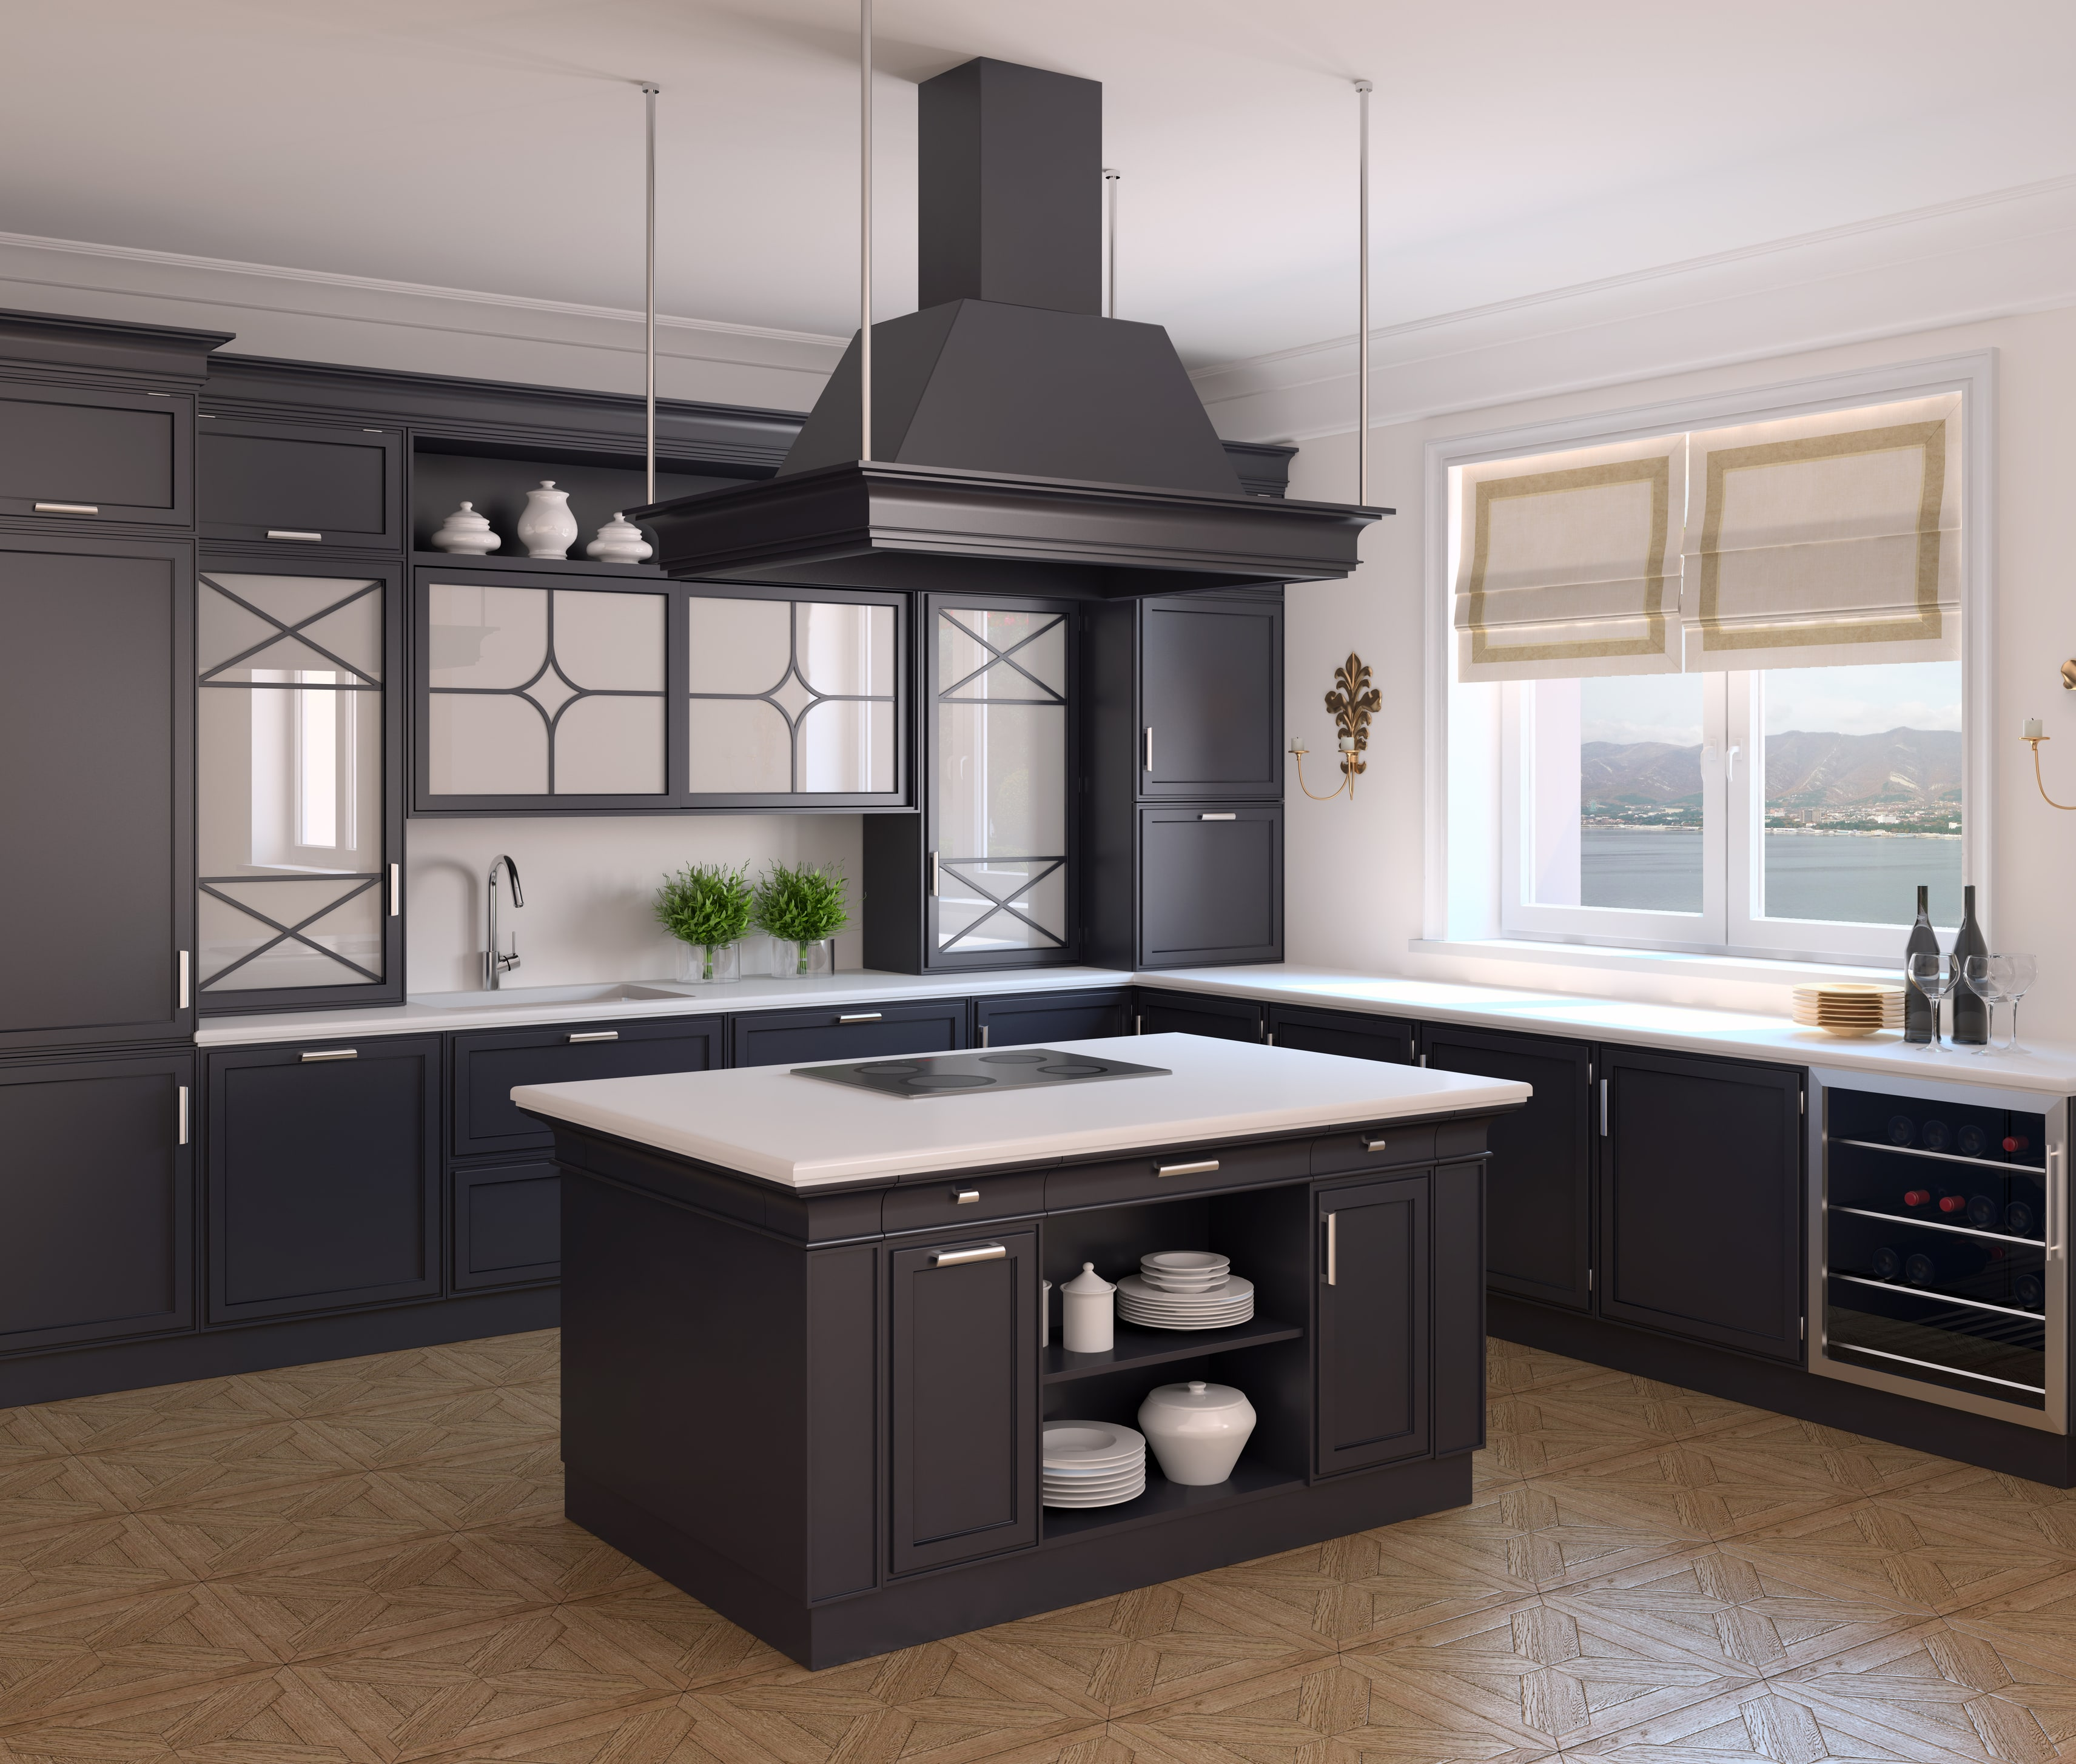 Open Oven In Kitchen: Armoires De Cuisine Tendances Par